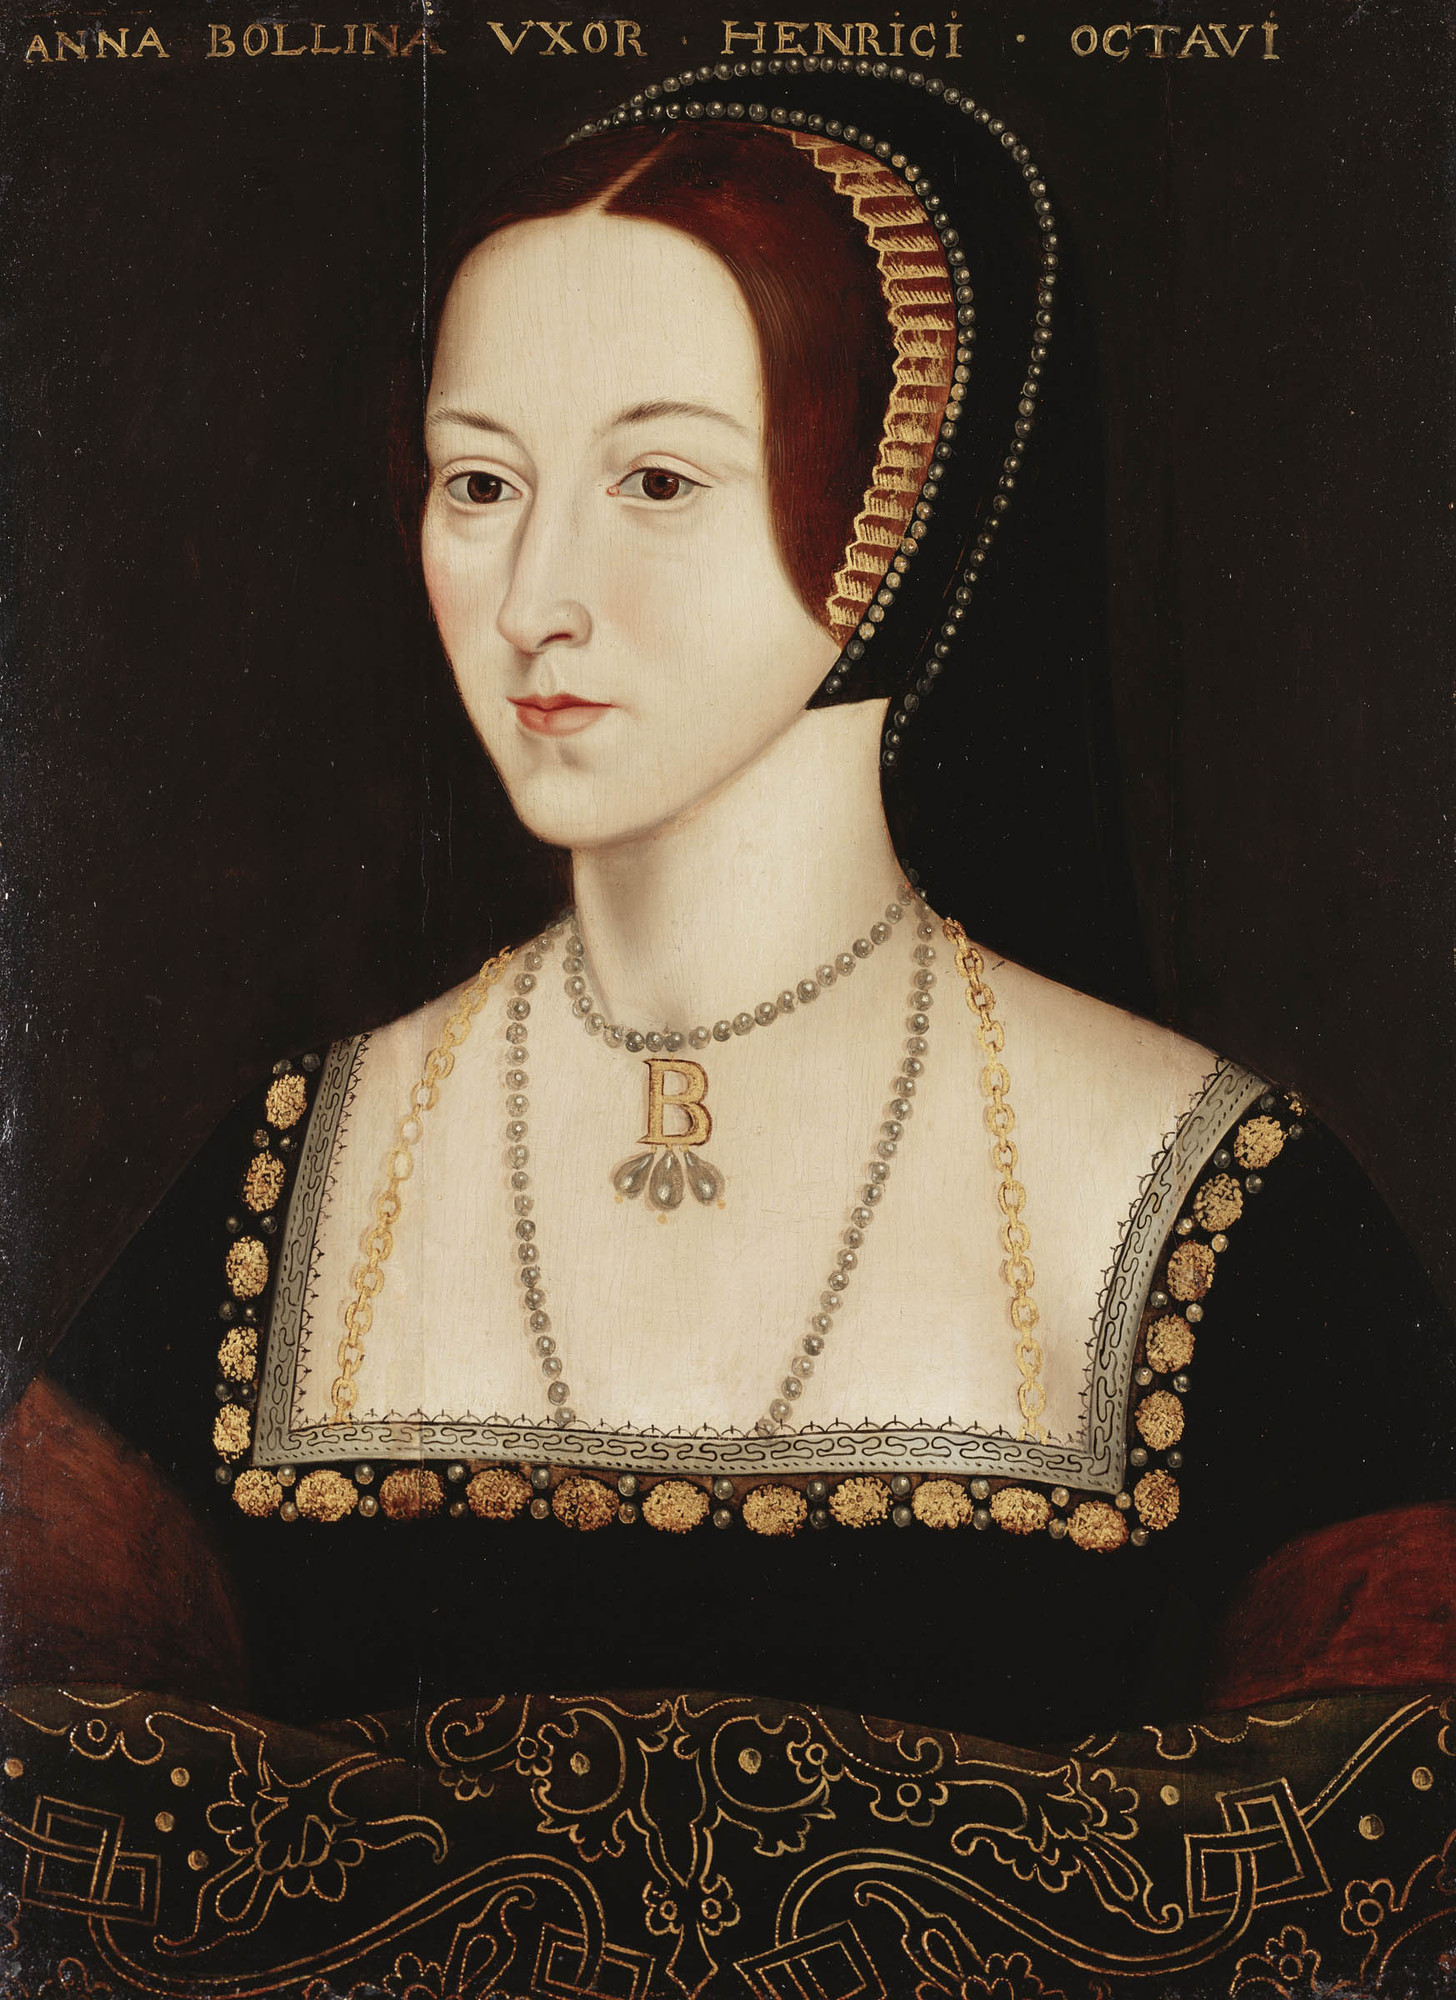 anne boleyn I loved you i still love you - anne to henry anne boleyn, born either 1501 or 1501, sometime between those periods, was the second wife of henry tudor and queen consort of england for three years.